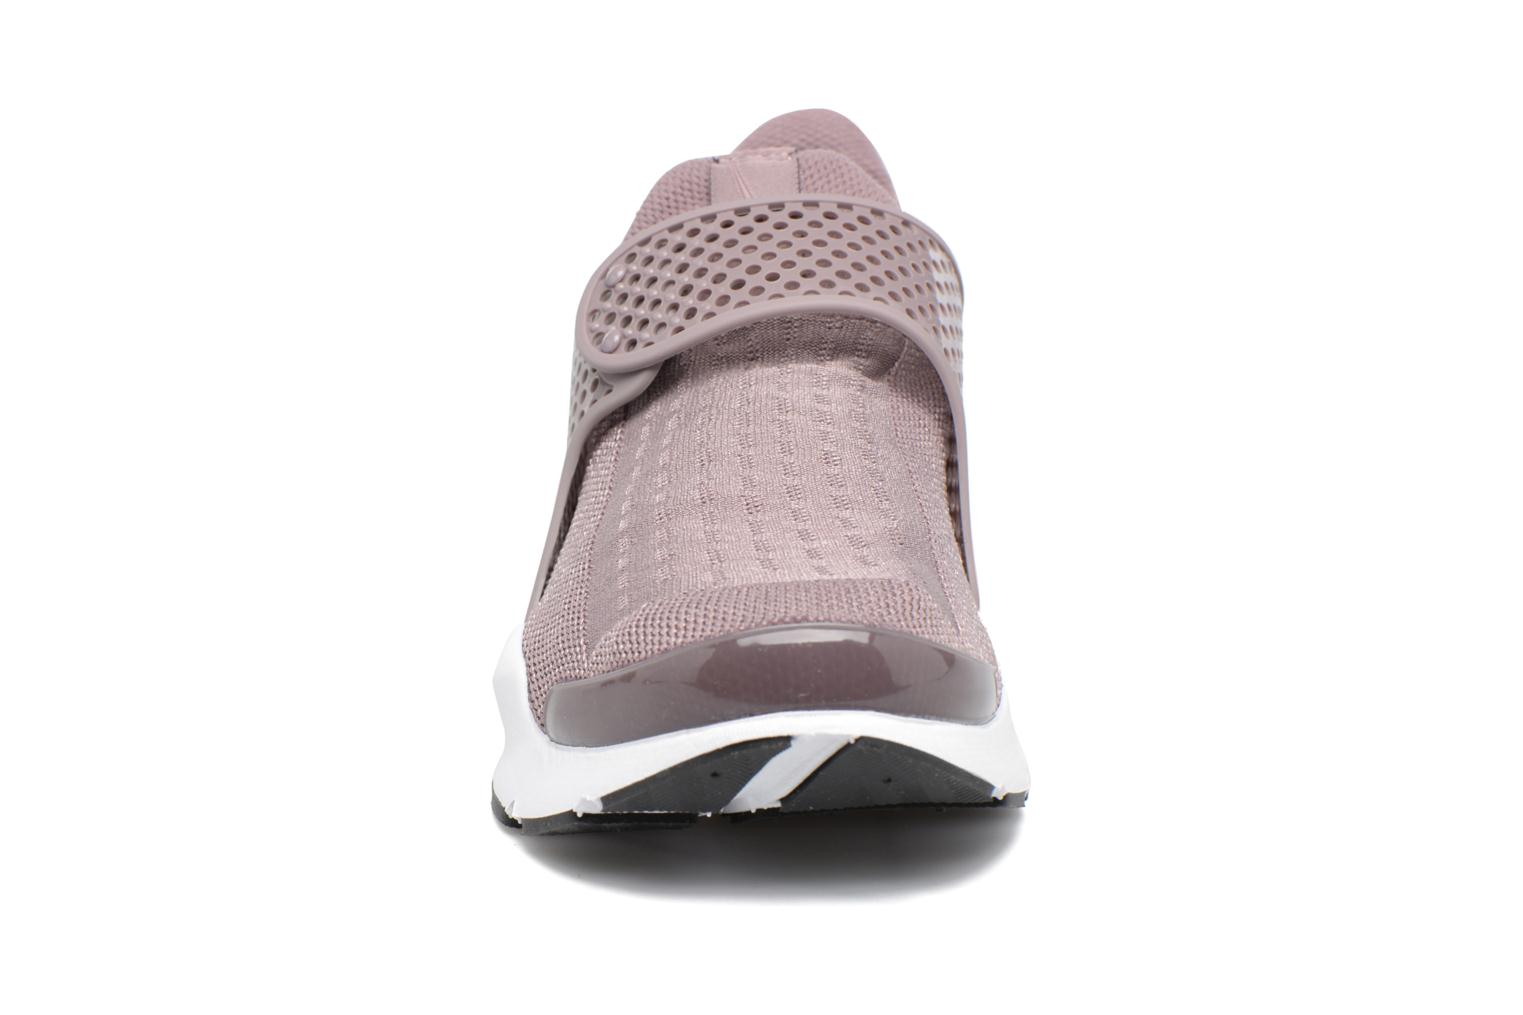 Wmns Nike Sock Dart Taupe Grey/White-Black